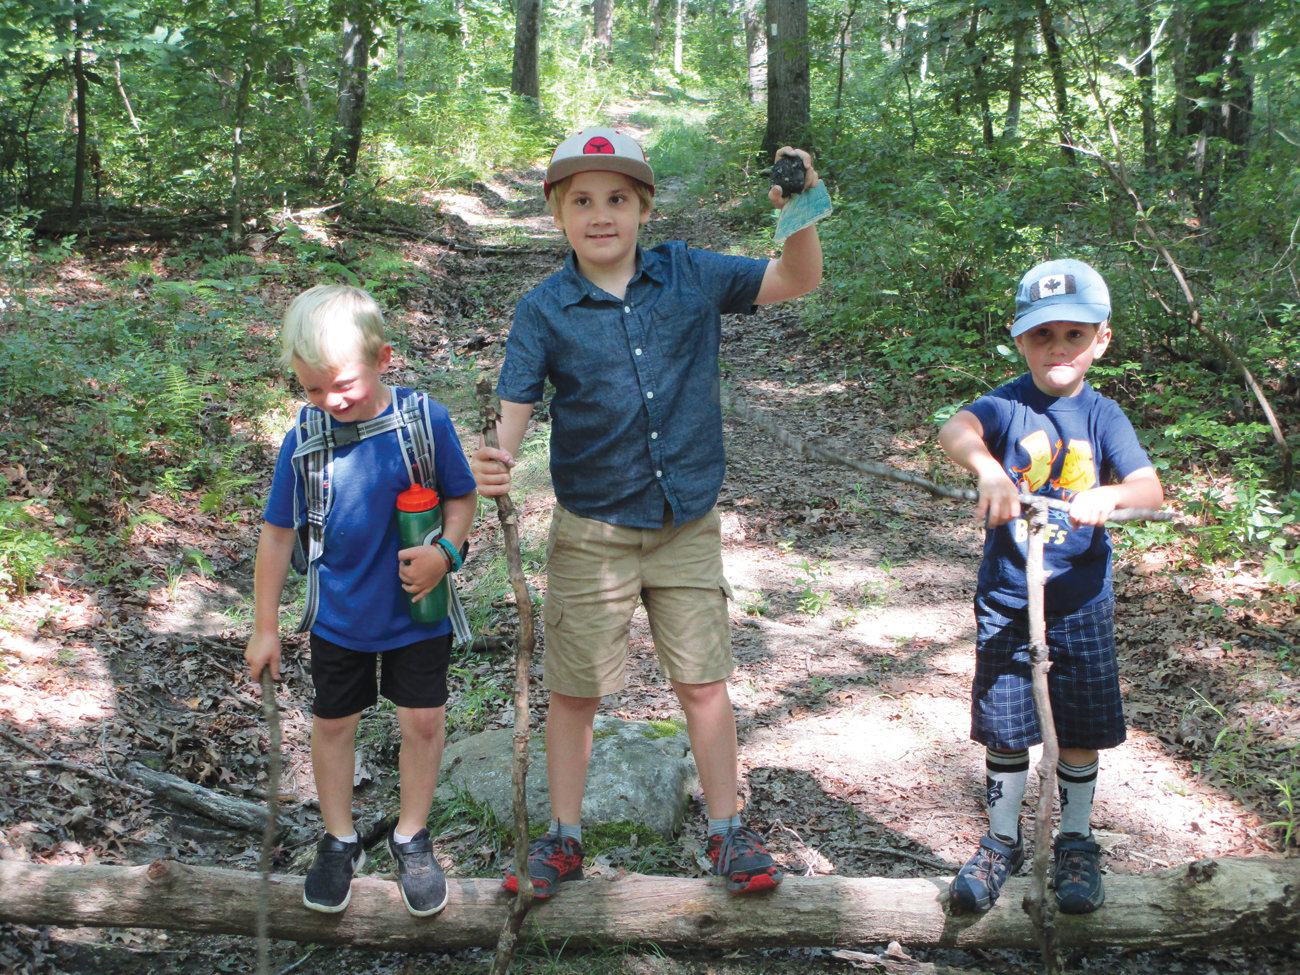 From left, Ryan Cardillo, Vincent Seng and Oliver Seng had fun walking the trail.